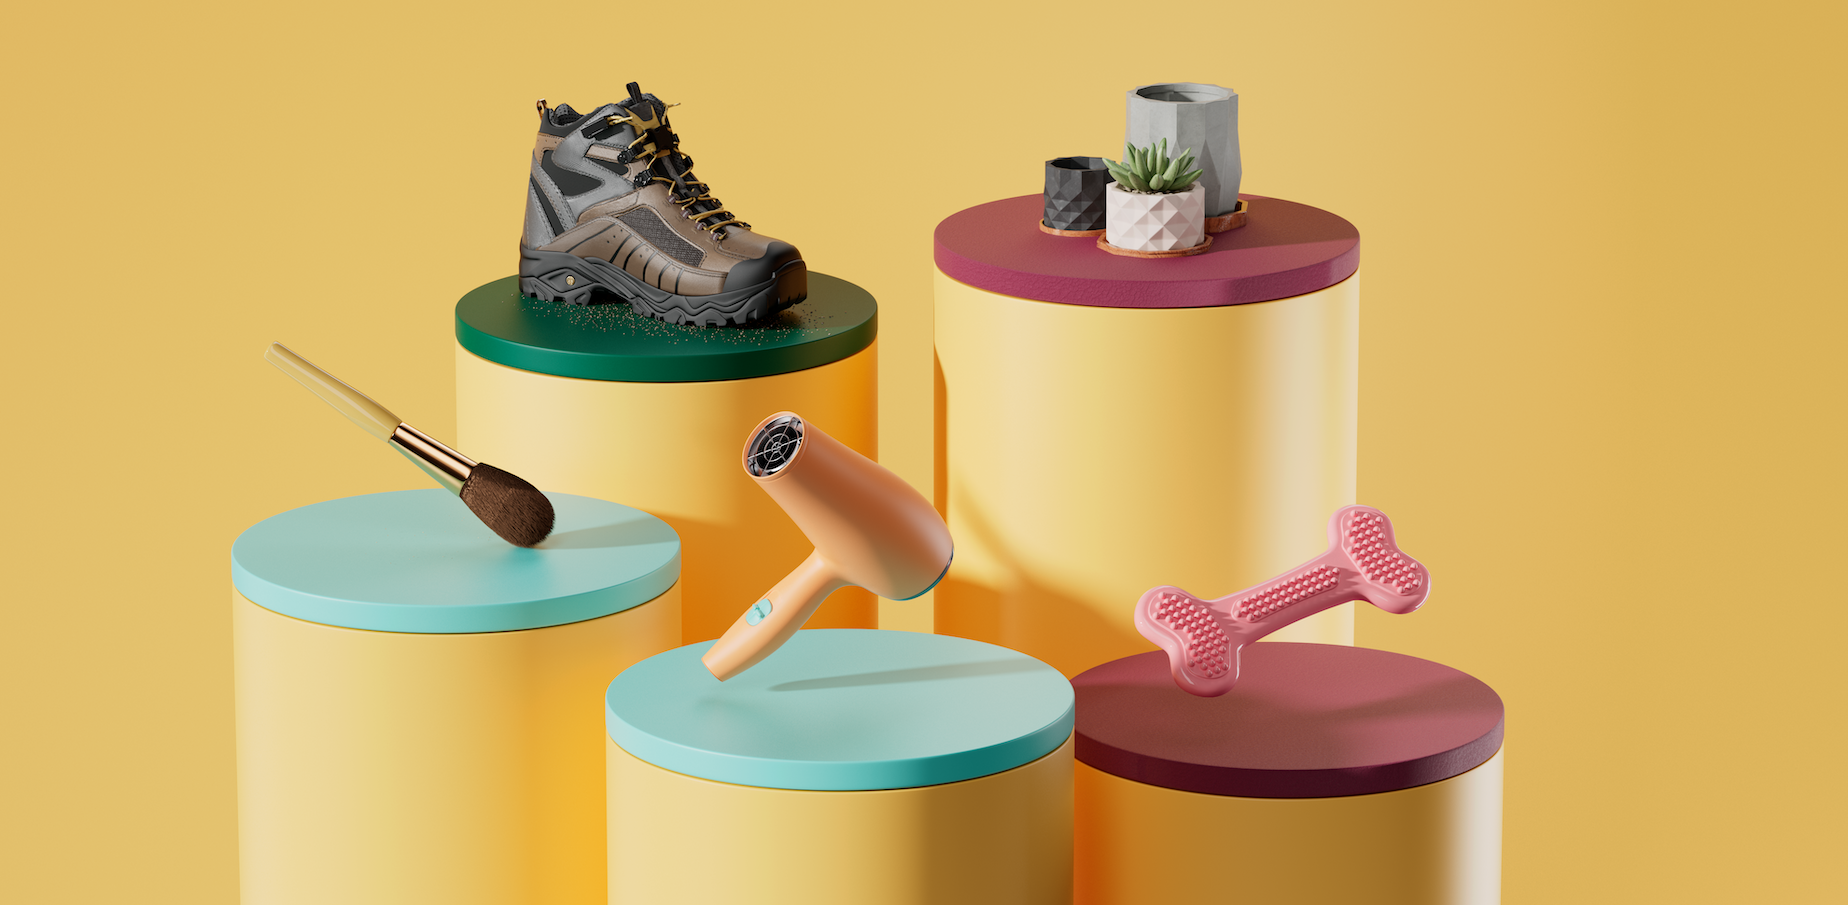 3D models of the top-selling trending products of 2021, covered in detailed throughout the article